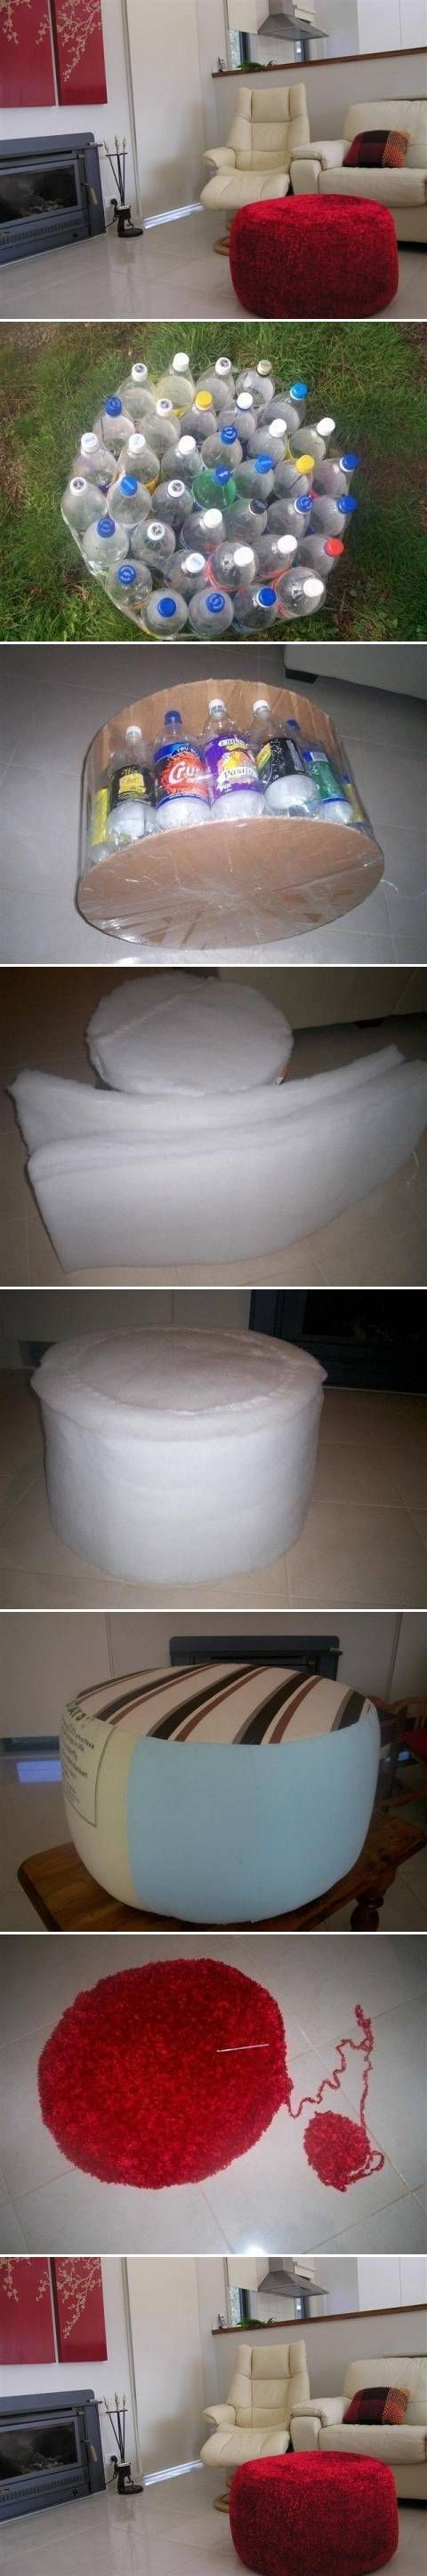 DIY Plastic Bottles Ottoman Click www.faveed.com for more craft ideas!......I know that I have pinned a similar one but this was too fun to pass up